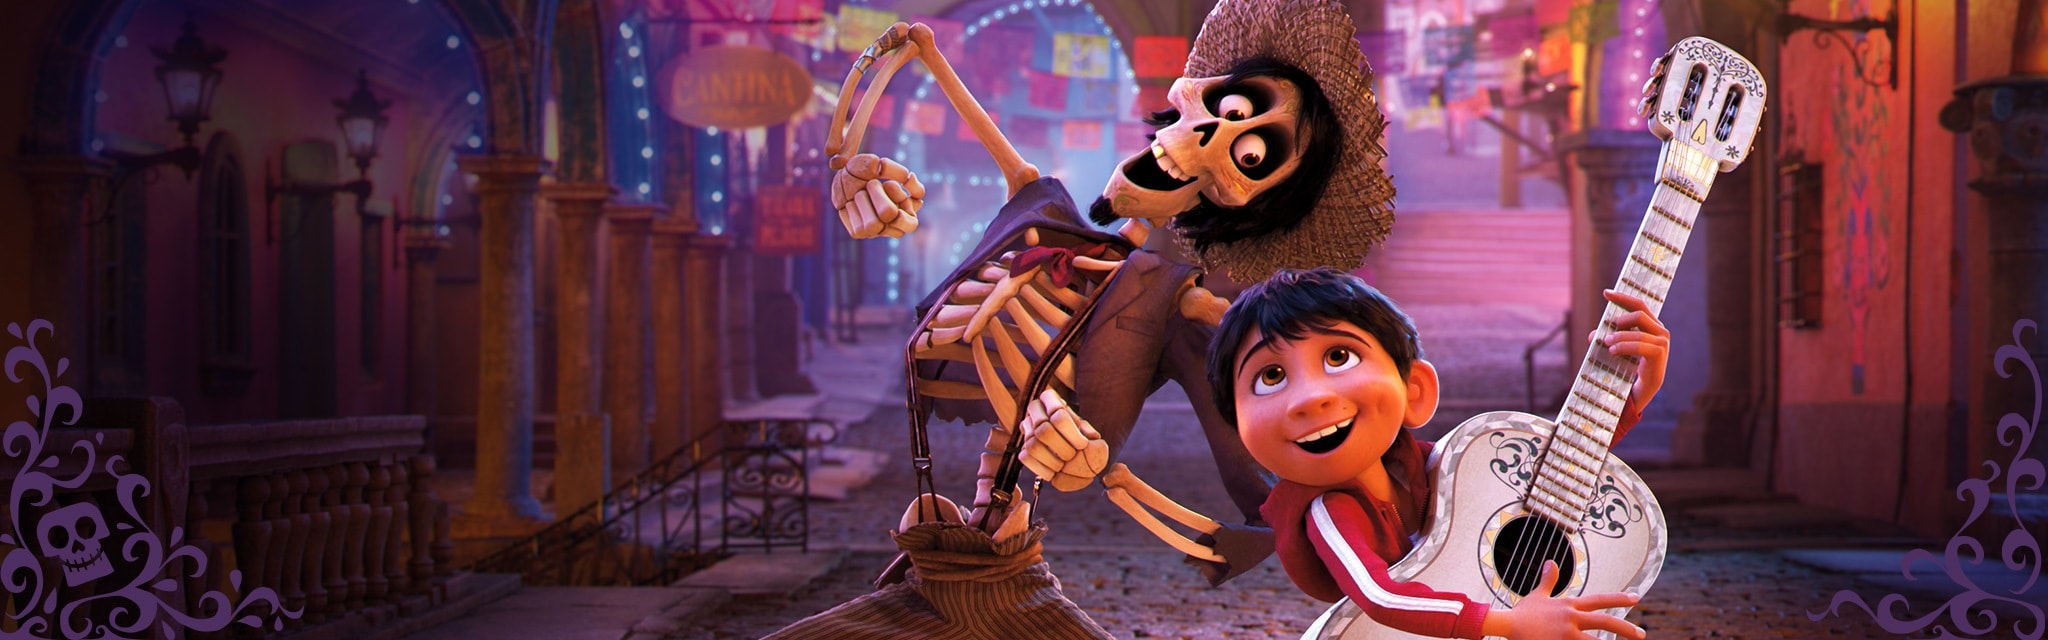 Coco Now Playing - Get Tickets